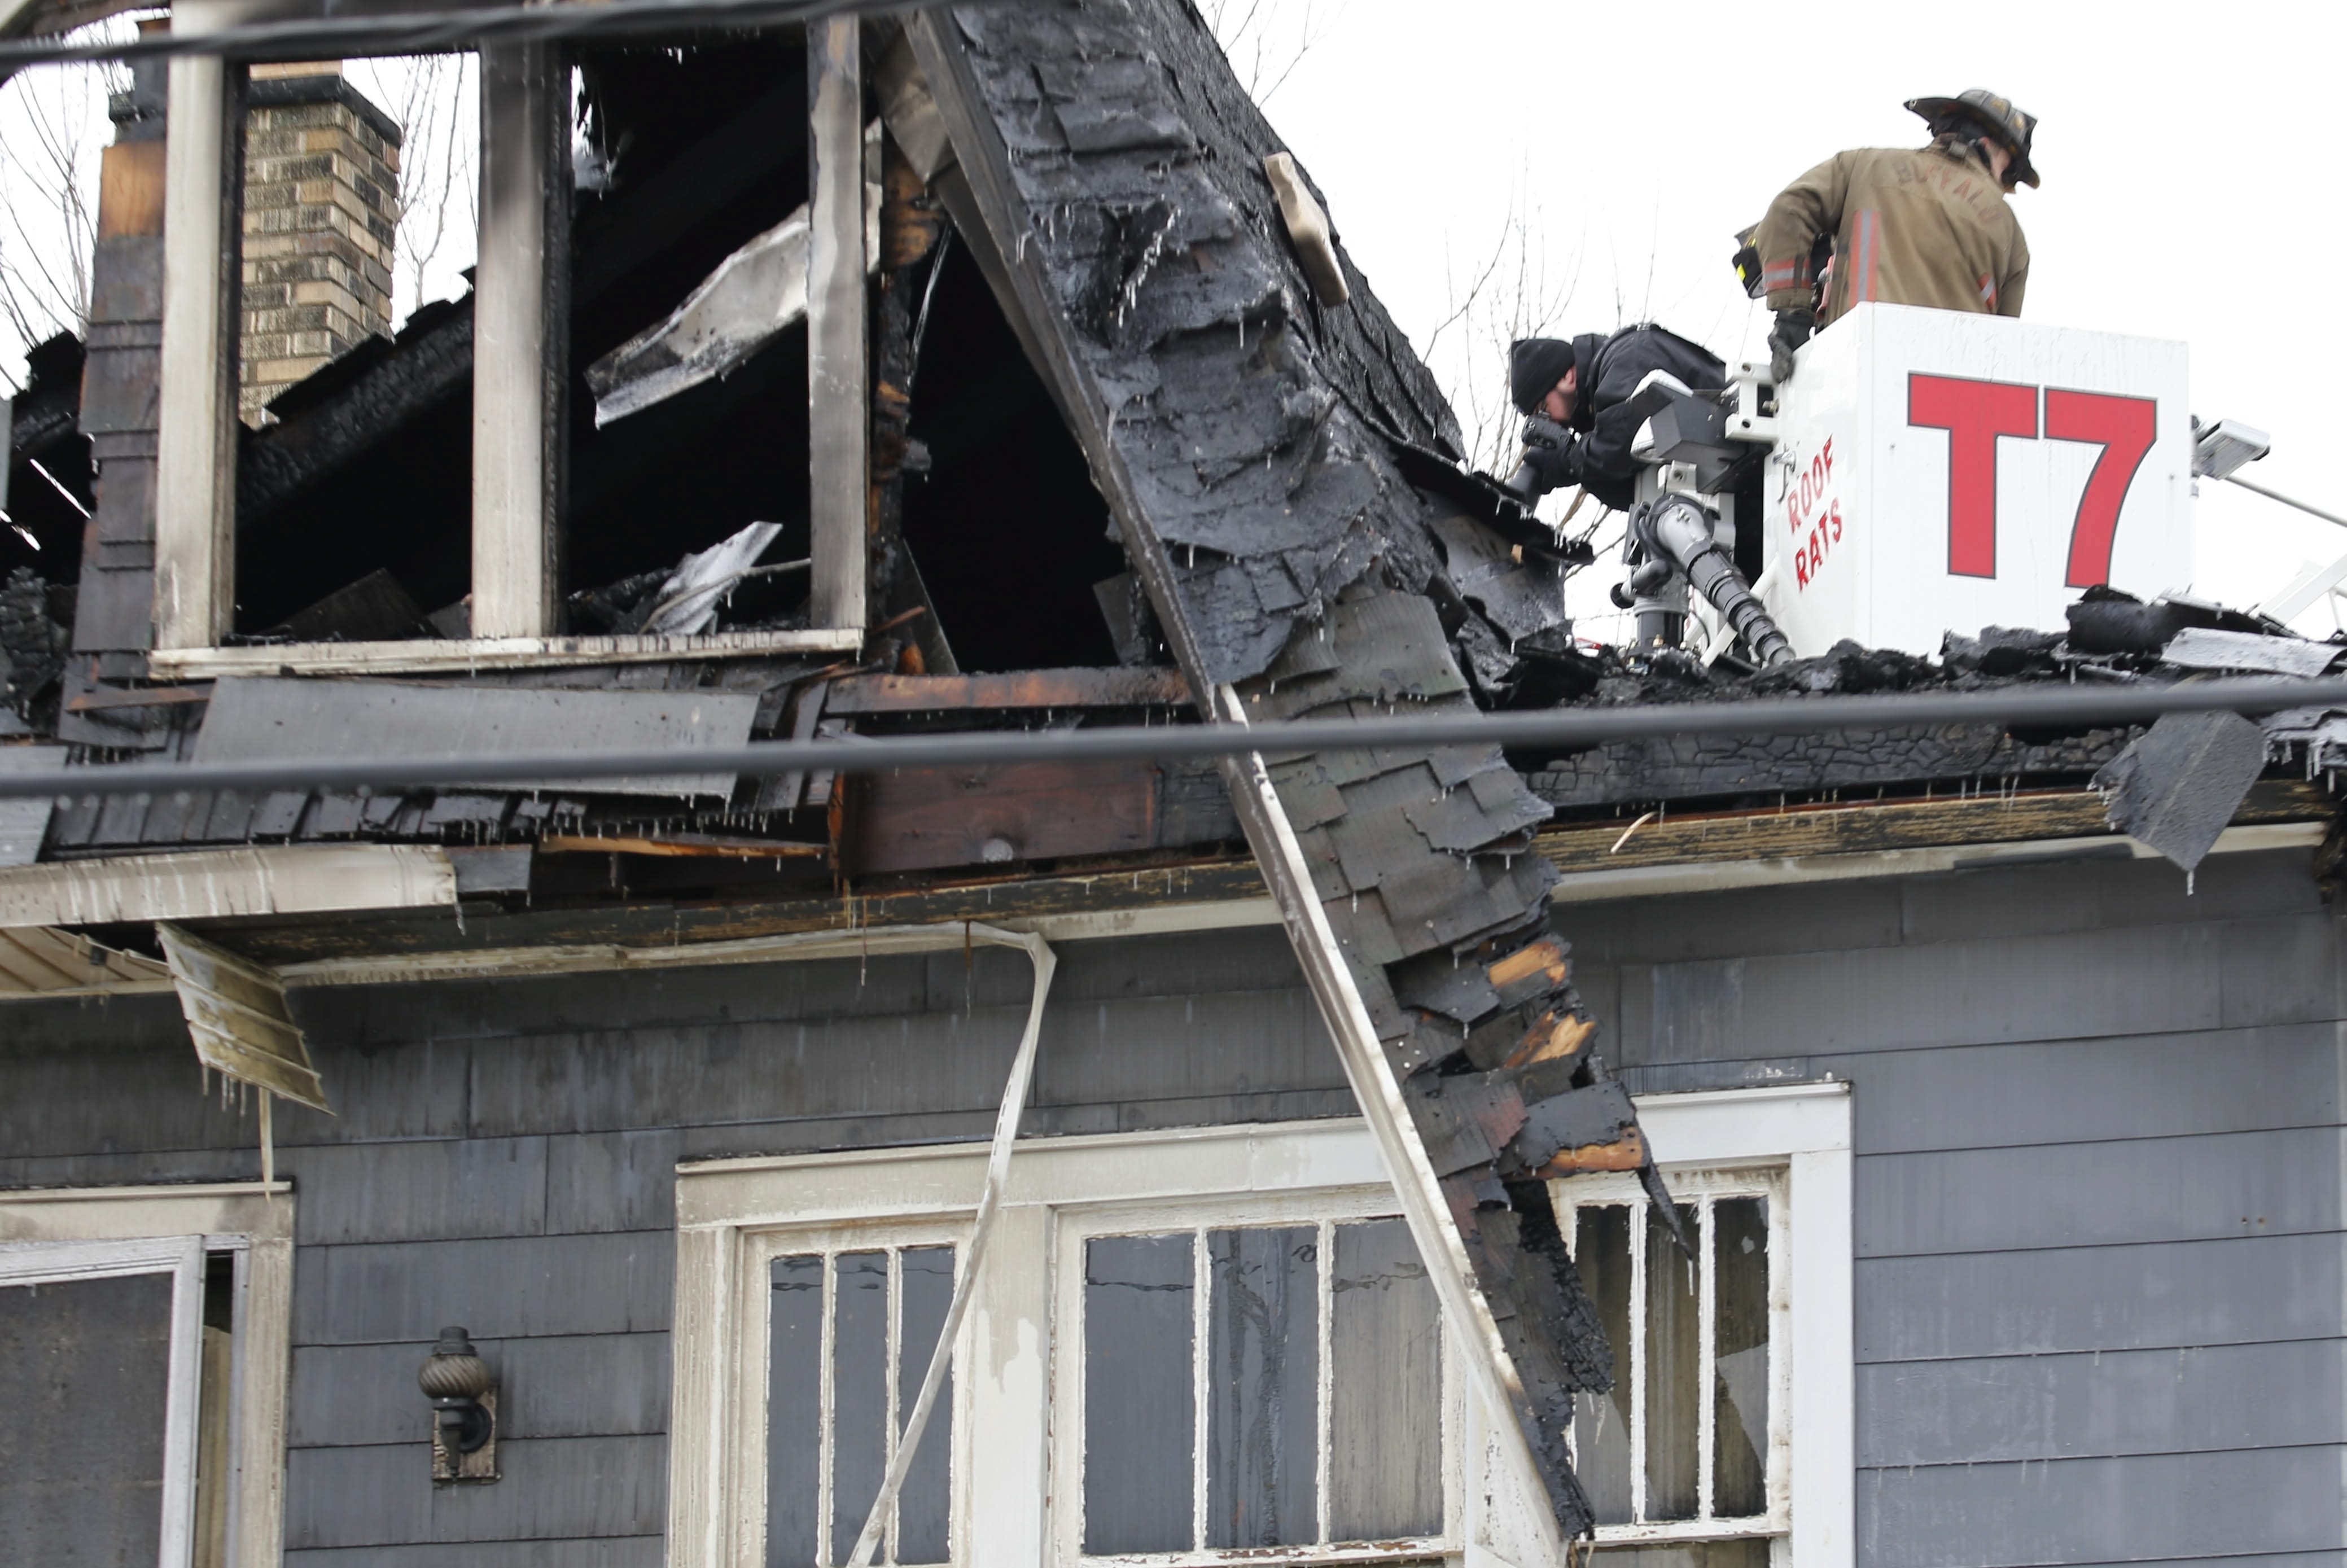 Police and fire investigators use a ladder truck to collect photographic evidence after a fire tore through 90 Humber Ave. early Friday morning, killing two and critically injuring a 9-year-old girl, Feb. 19, 2016.  (Derek Gee/Buffalo News)